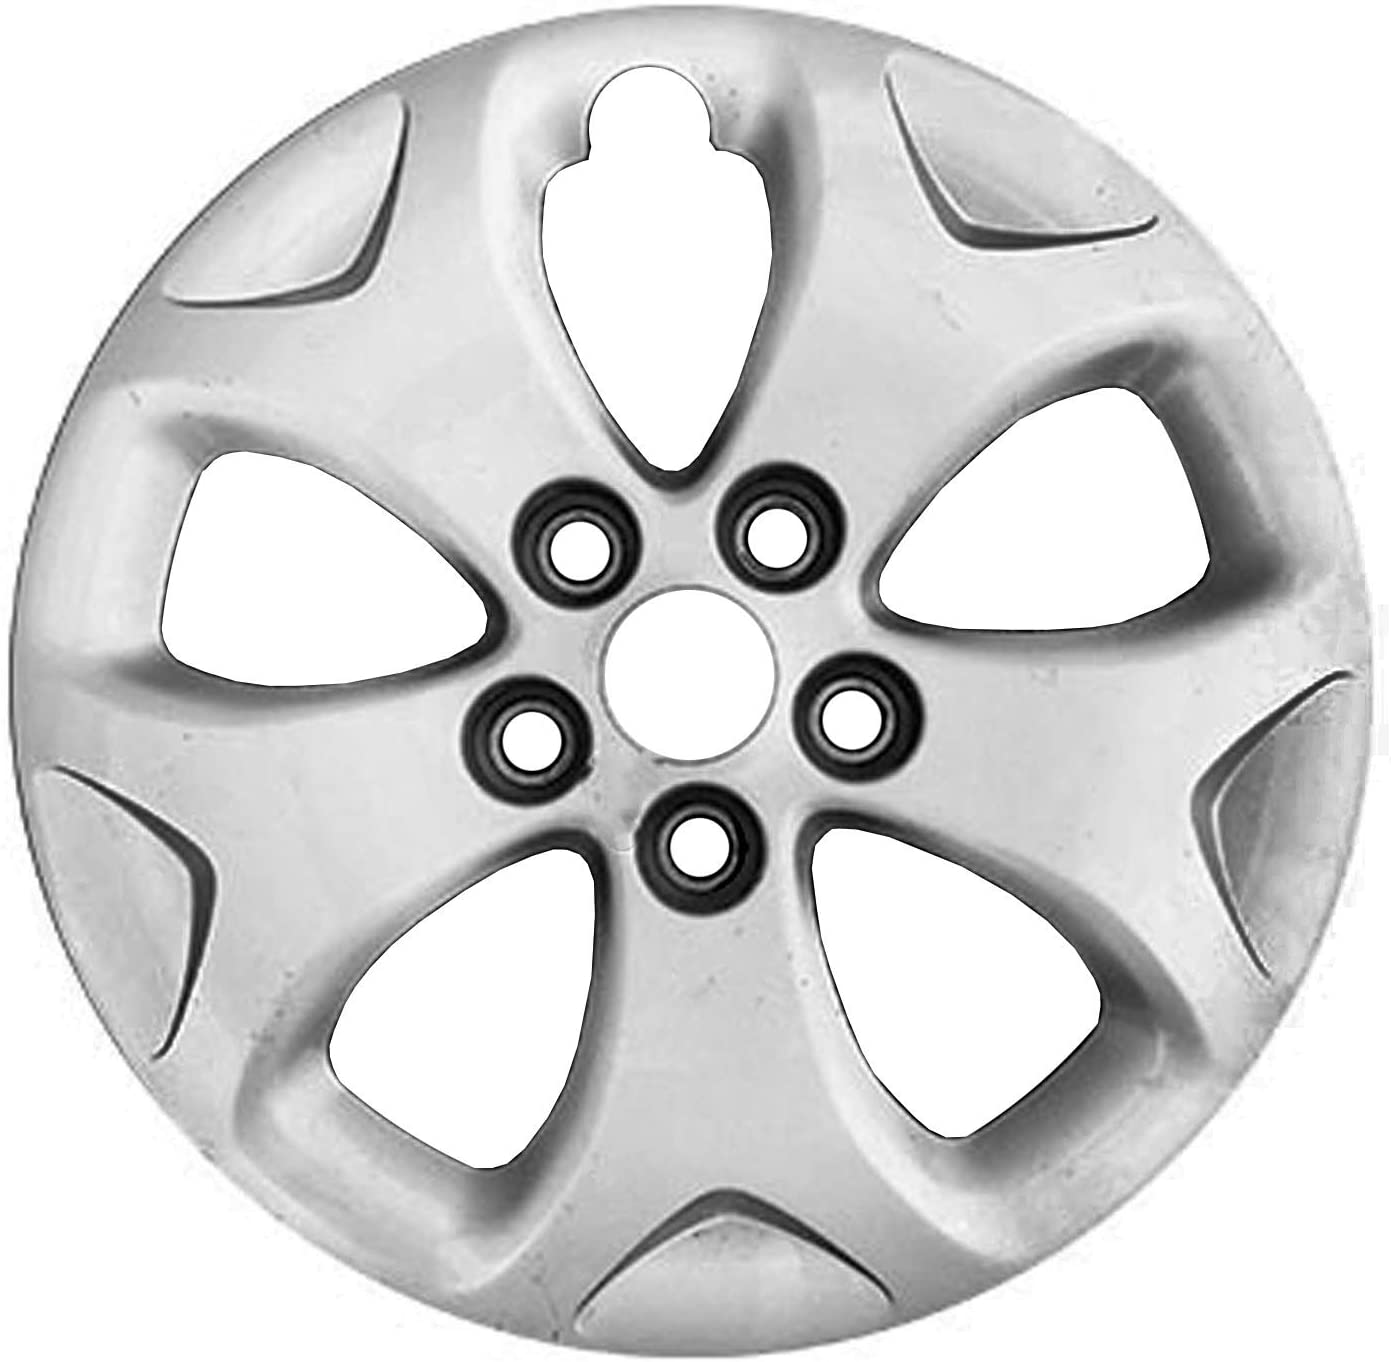 Multiple Manufactures FWC66030U20 Standard (No variation) Wheel Cover